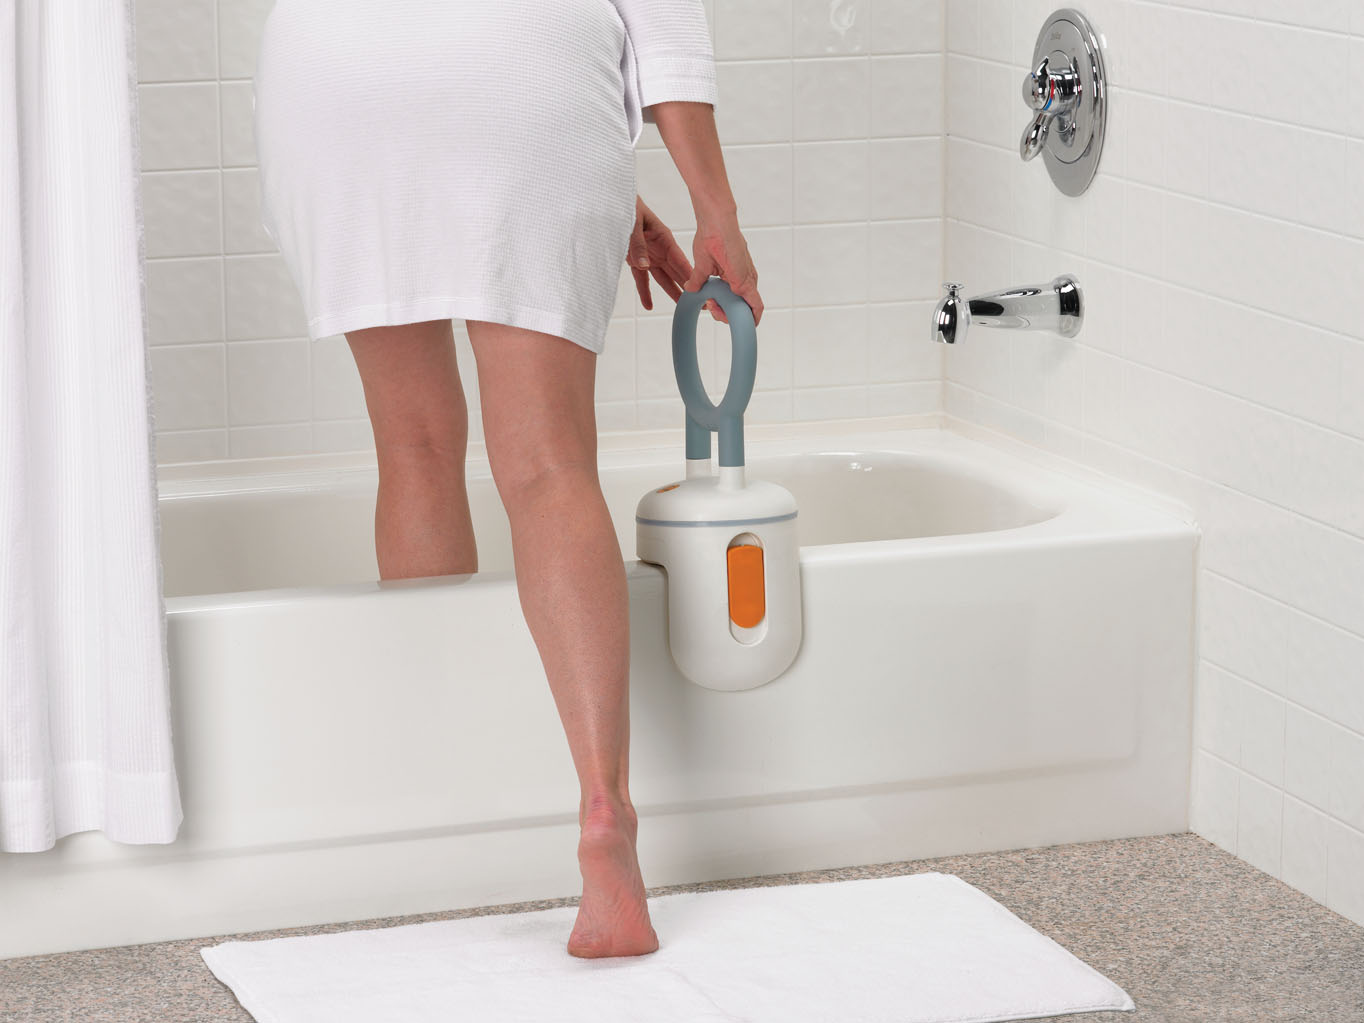 Bathroom Accessories Elderly bathroom accessories for the elderly - healthydetroiter